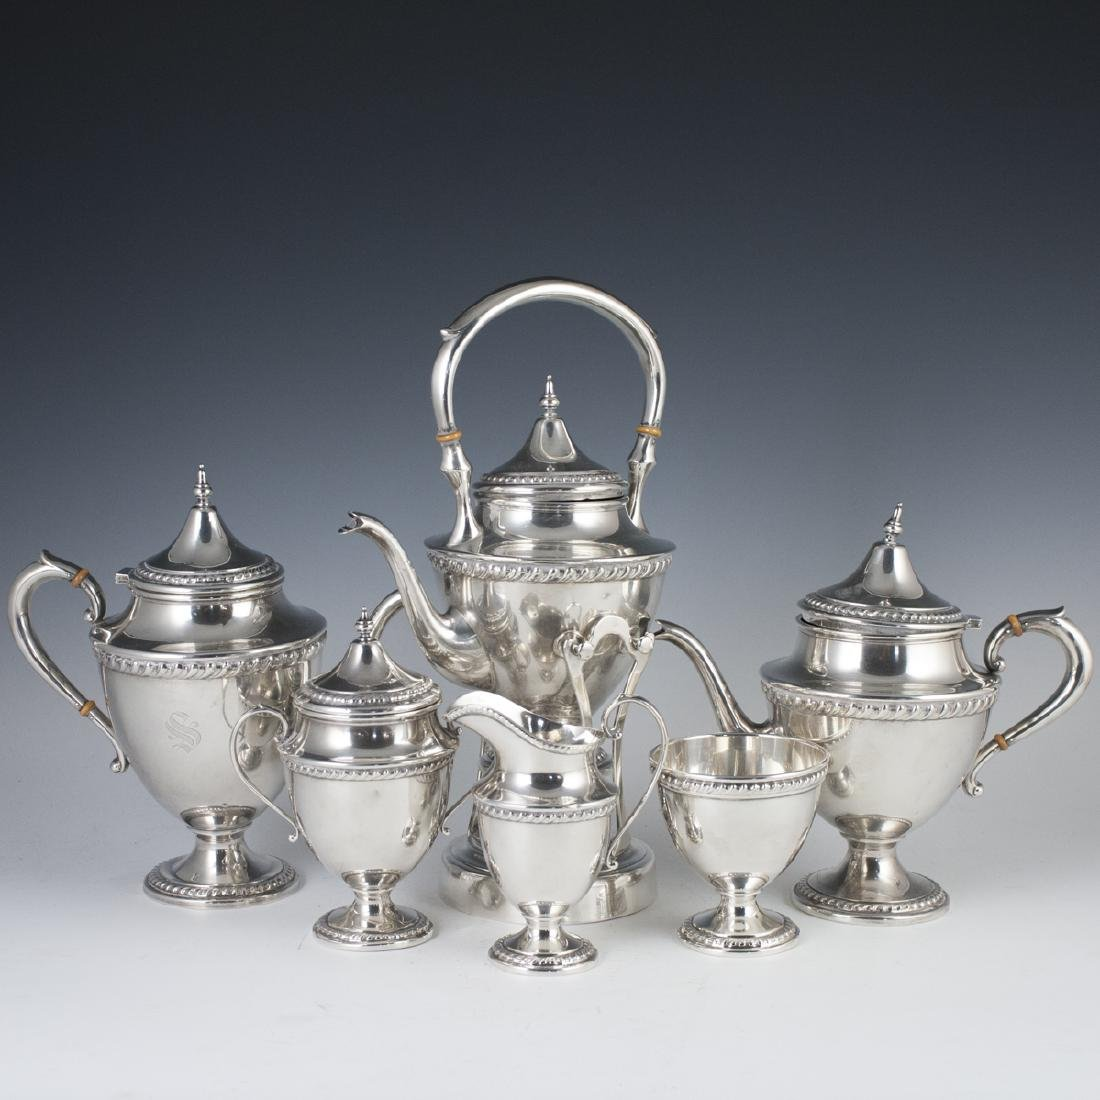 Ellmore Silver Co. Sterling Tea Set